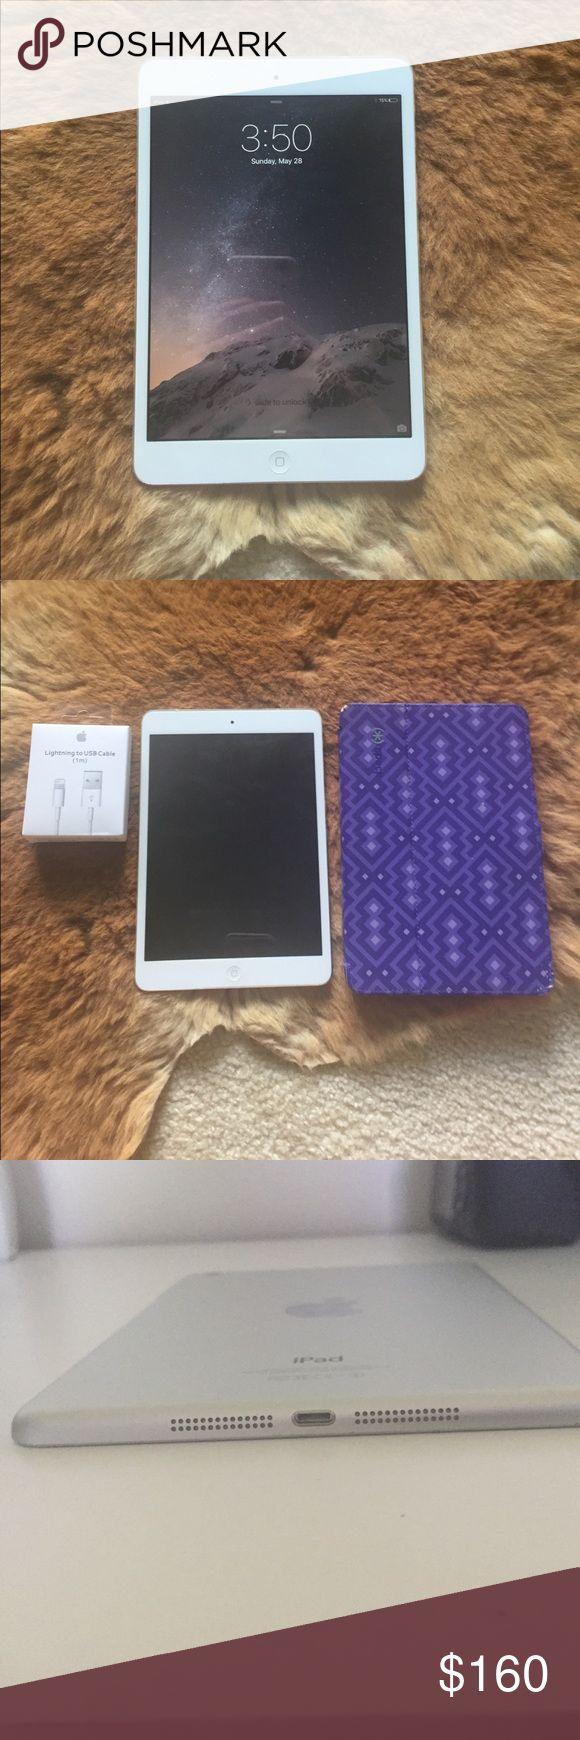 Apple Ipad Mini 1st Generation With Speck Case Excellent, no icloud or itunes lock ipad mini wifi. works great! i used it for youtube videos. i need a new laptop though. comes with a speck case and a brand new OEM apple 3 ft long lightning charge cable. Apple Other